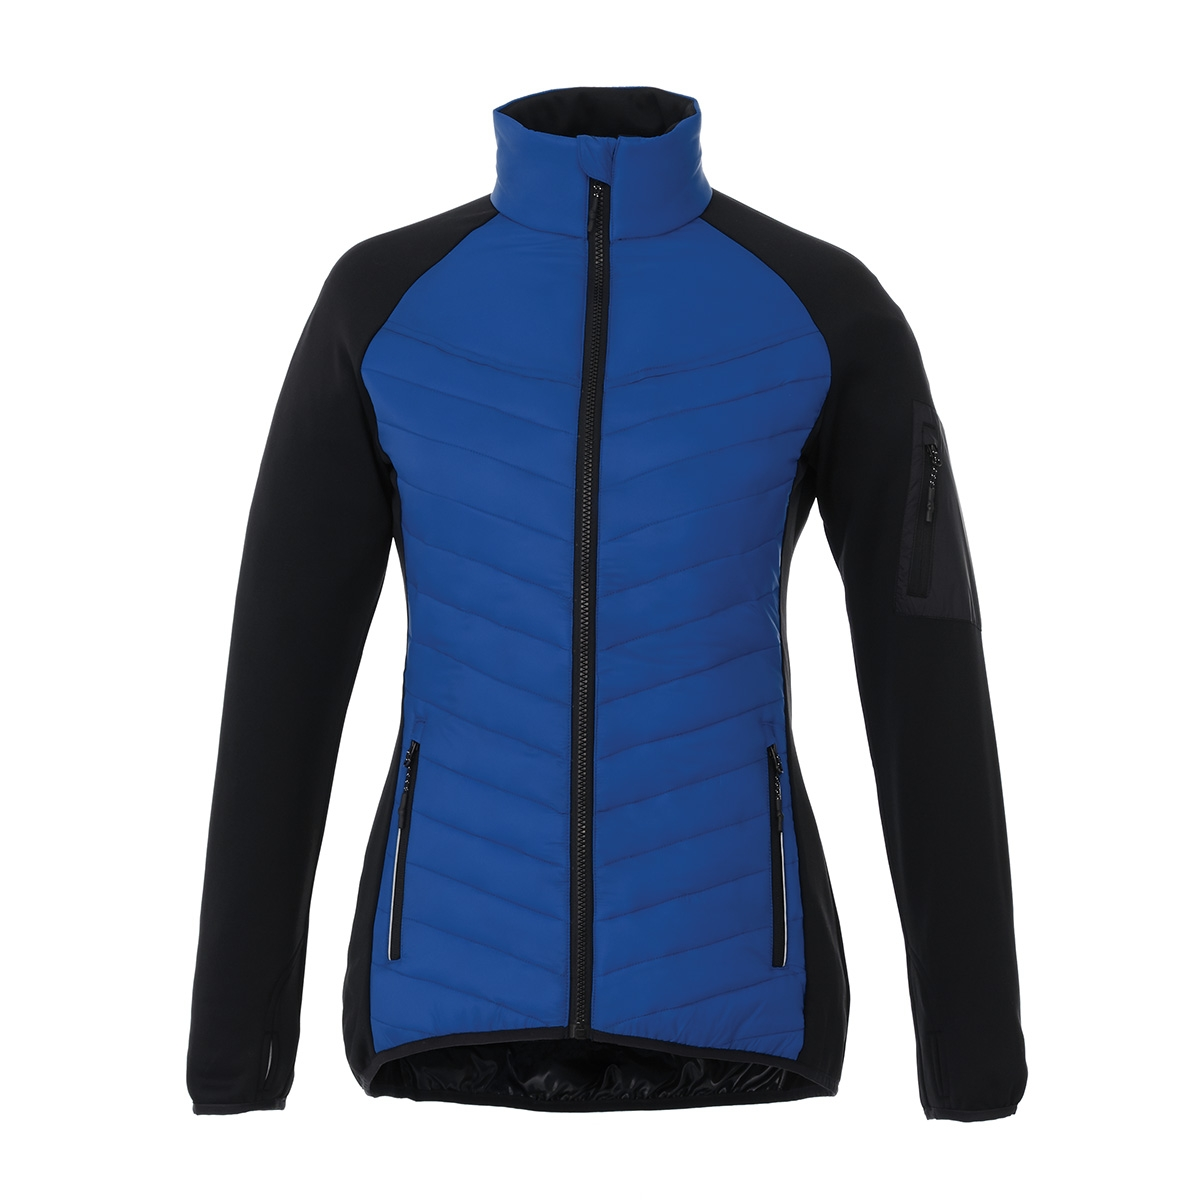 Banff Hybrid Insulated Women's Jacket, #99602 - Embroidered